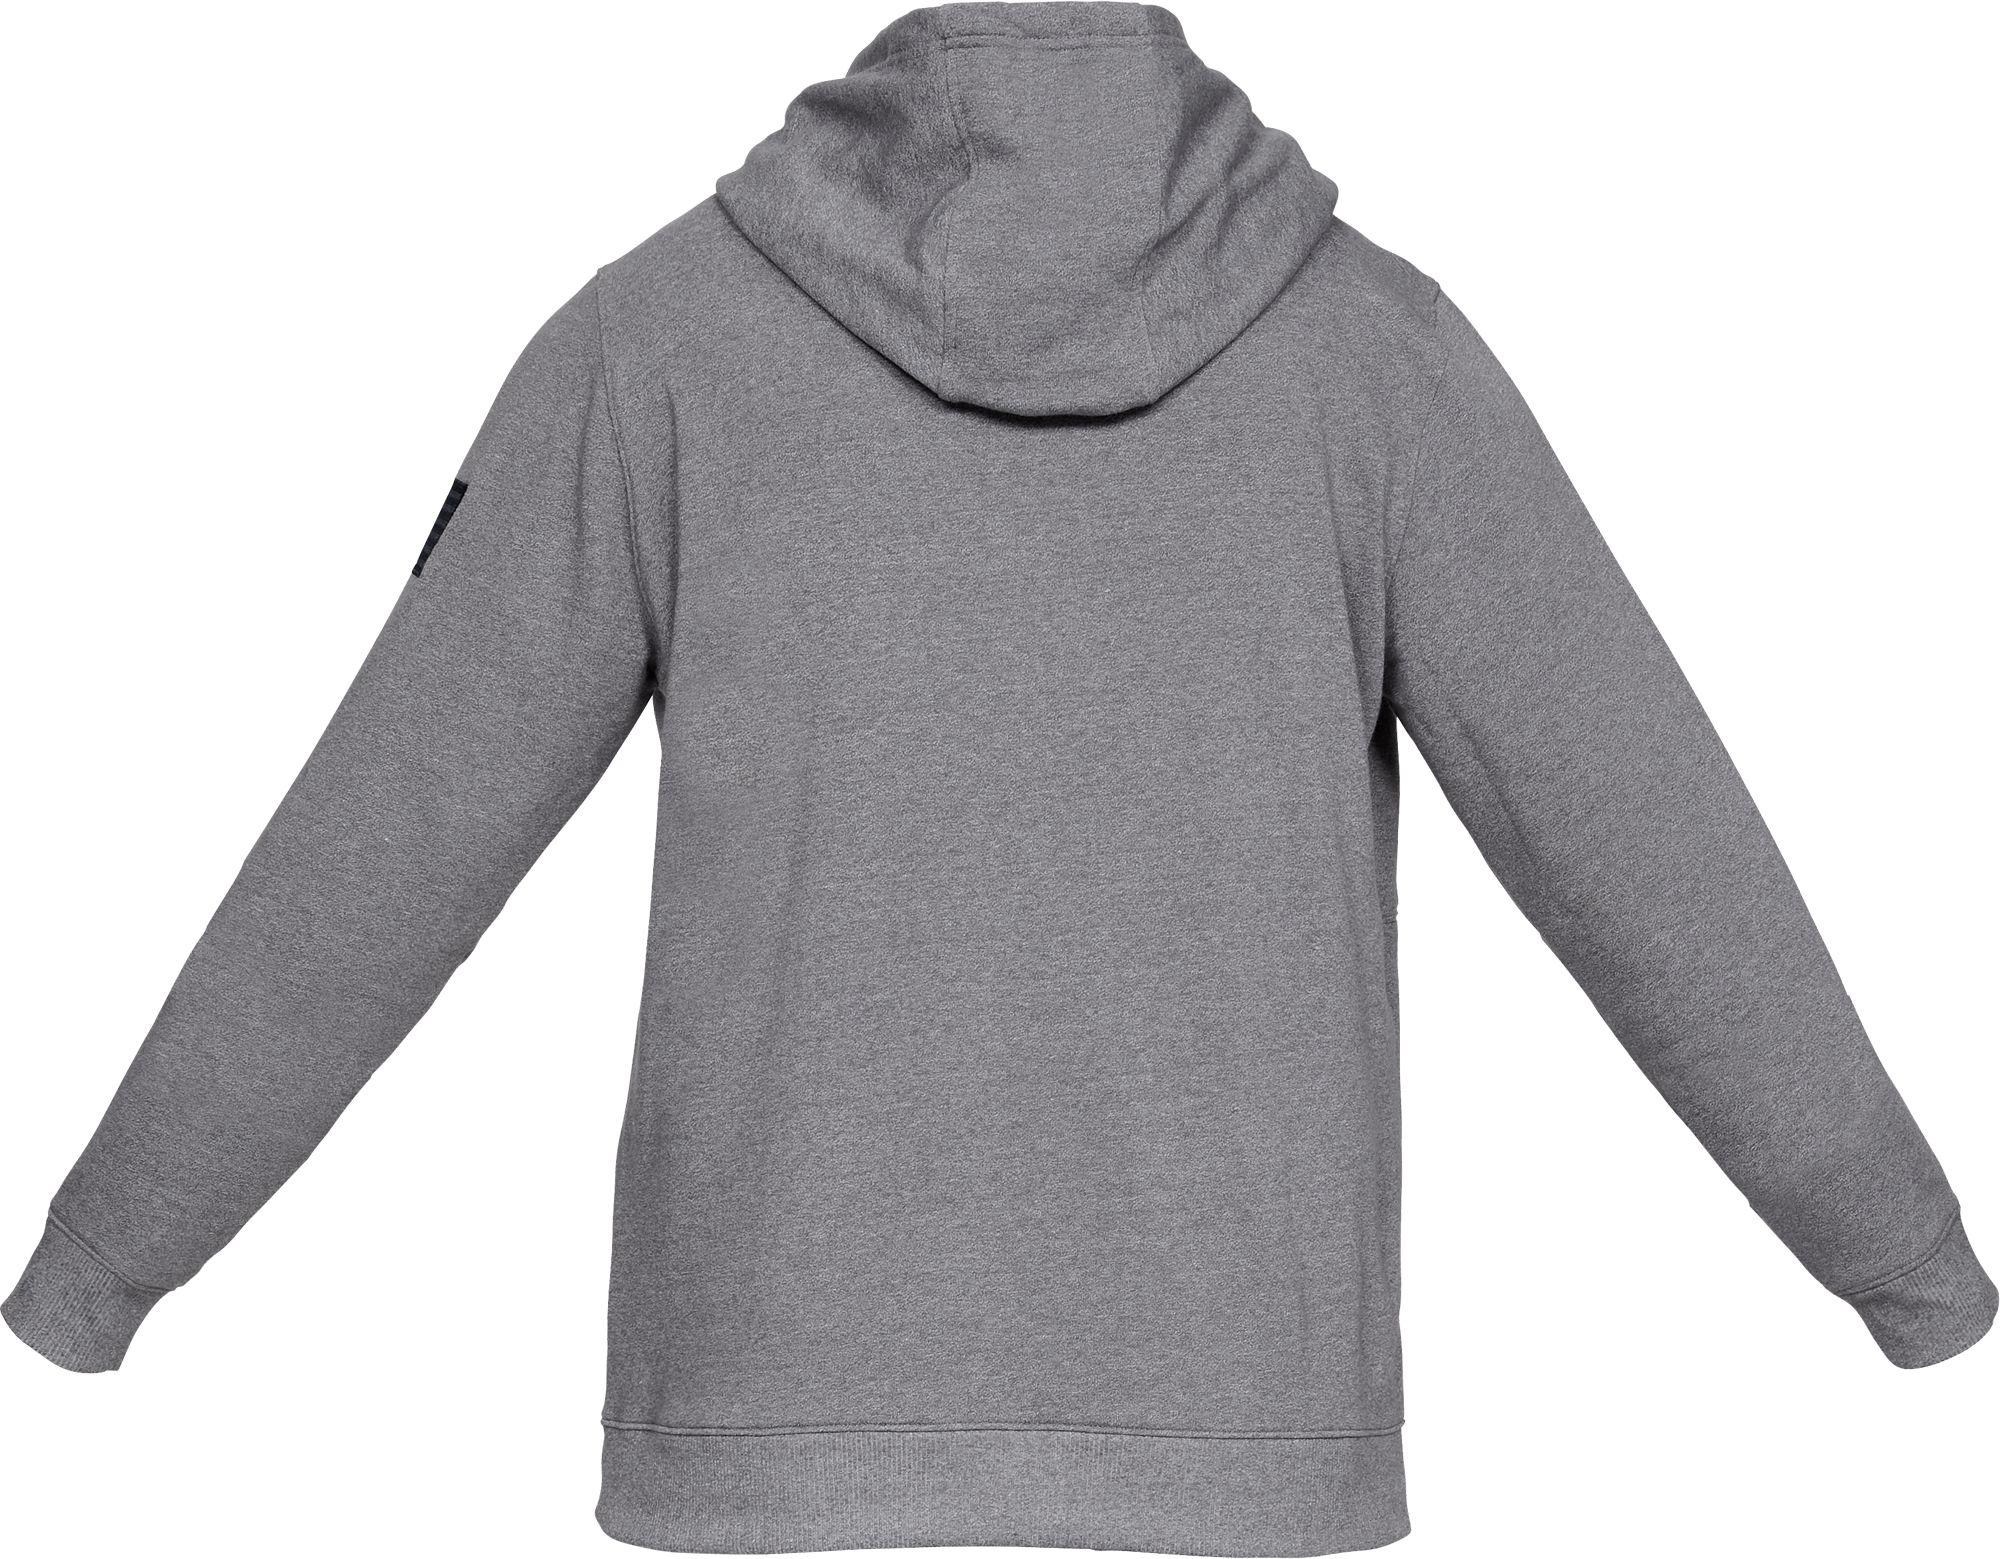 5e92035ea6b4 Under Armour Project Rock Usdna Hoodie in Gray for Men - Lyst